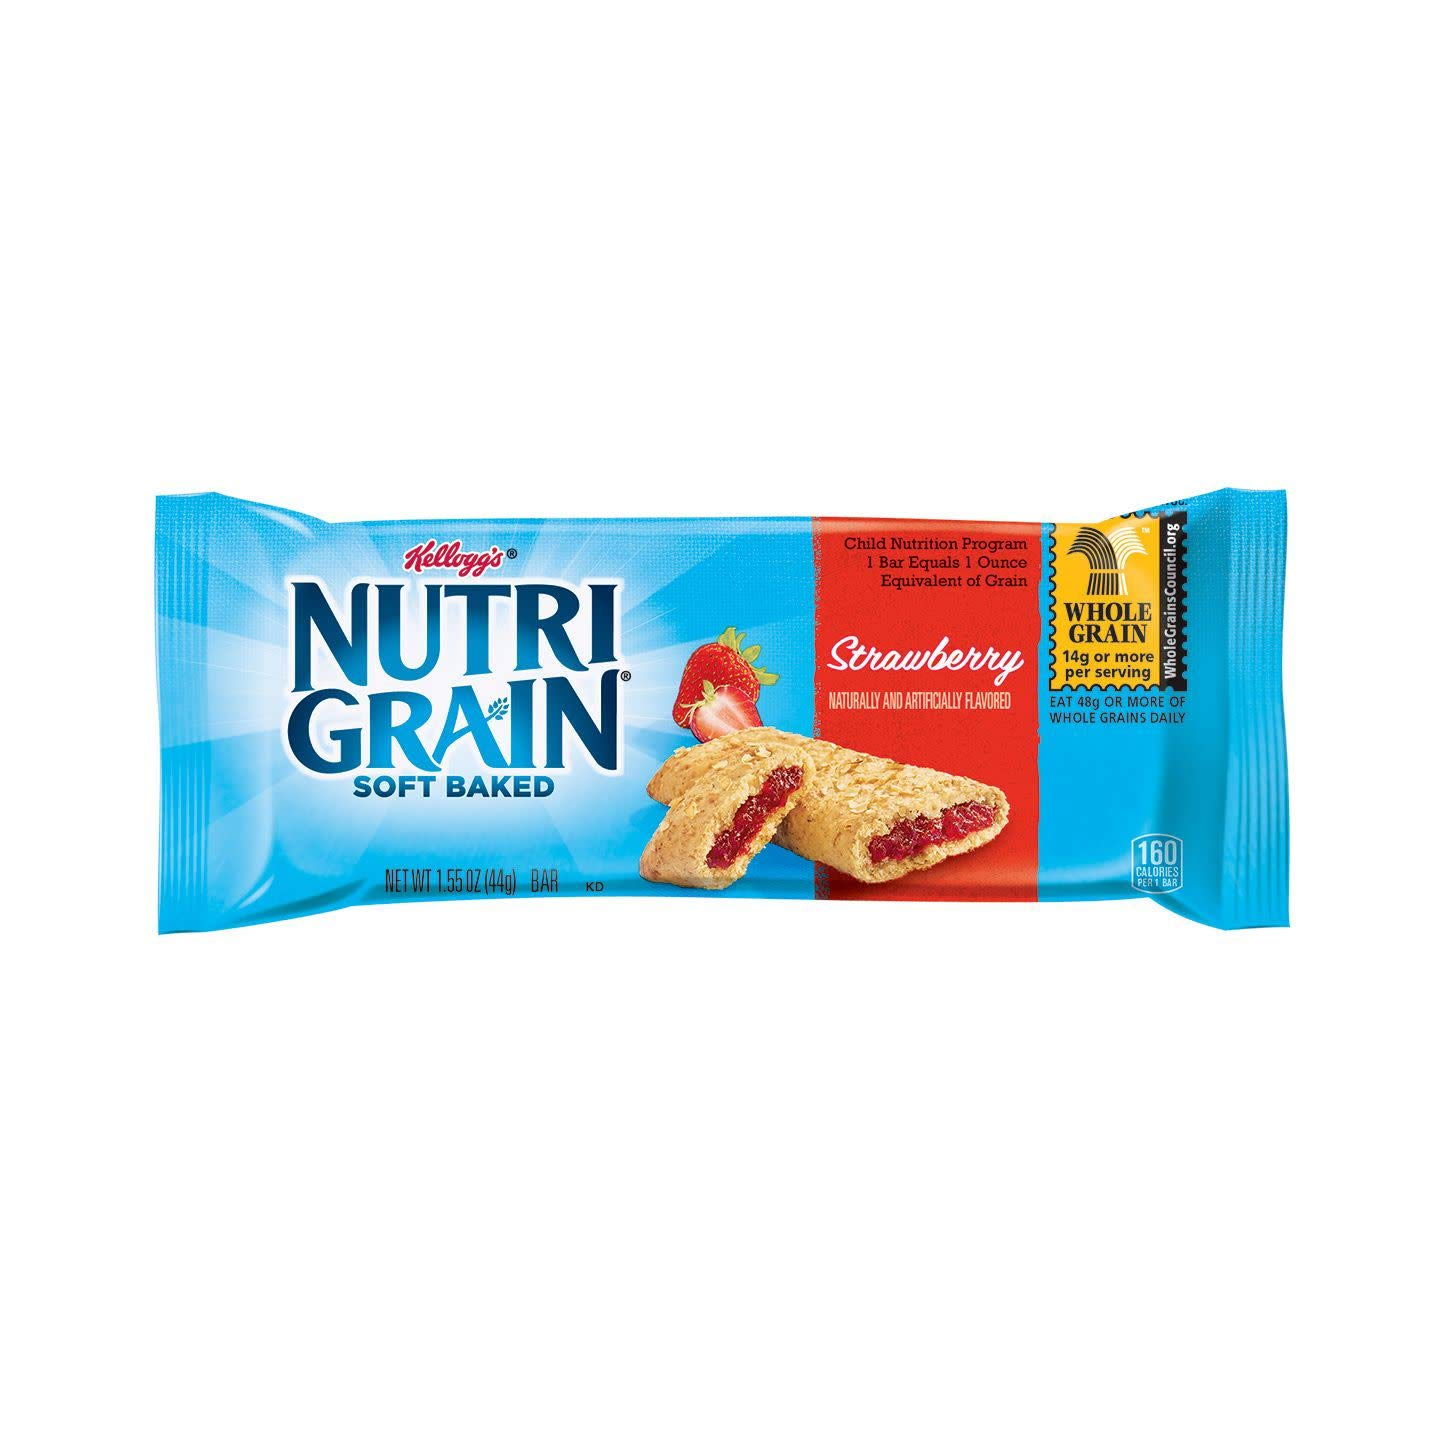 Kellogg's Nutri-Grain, Soft Baked Breakfast Bars, Strawberry, Made with Whole Grain, Strawberry, 24.8oz (96 count)